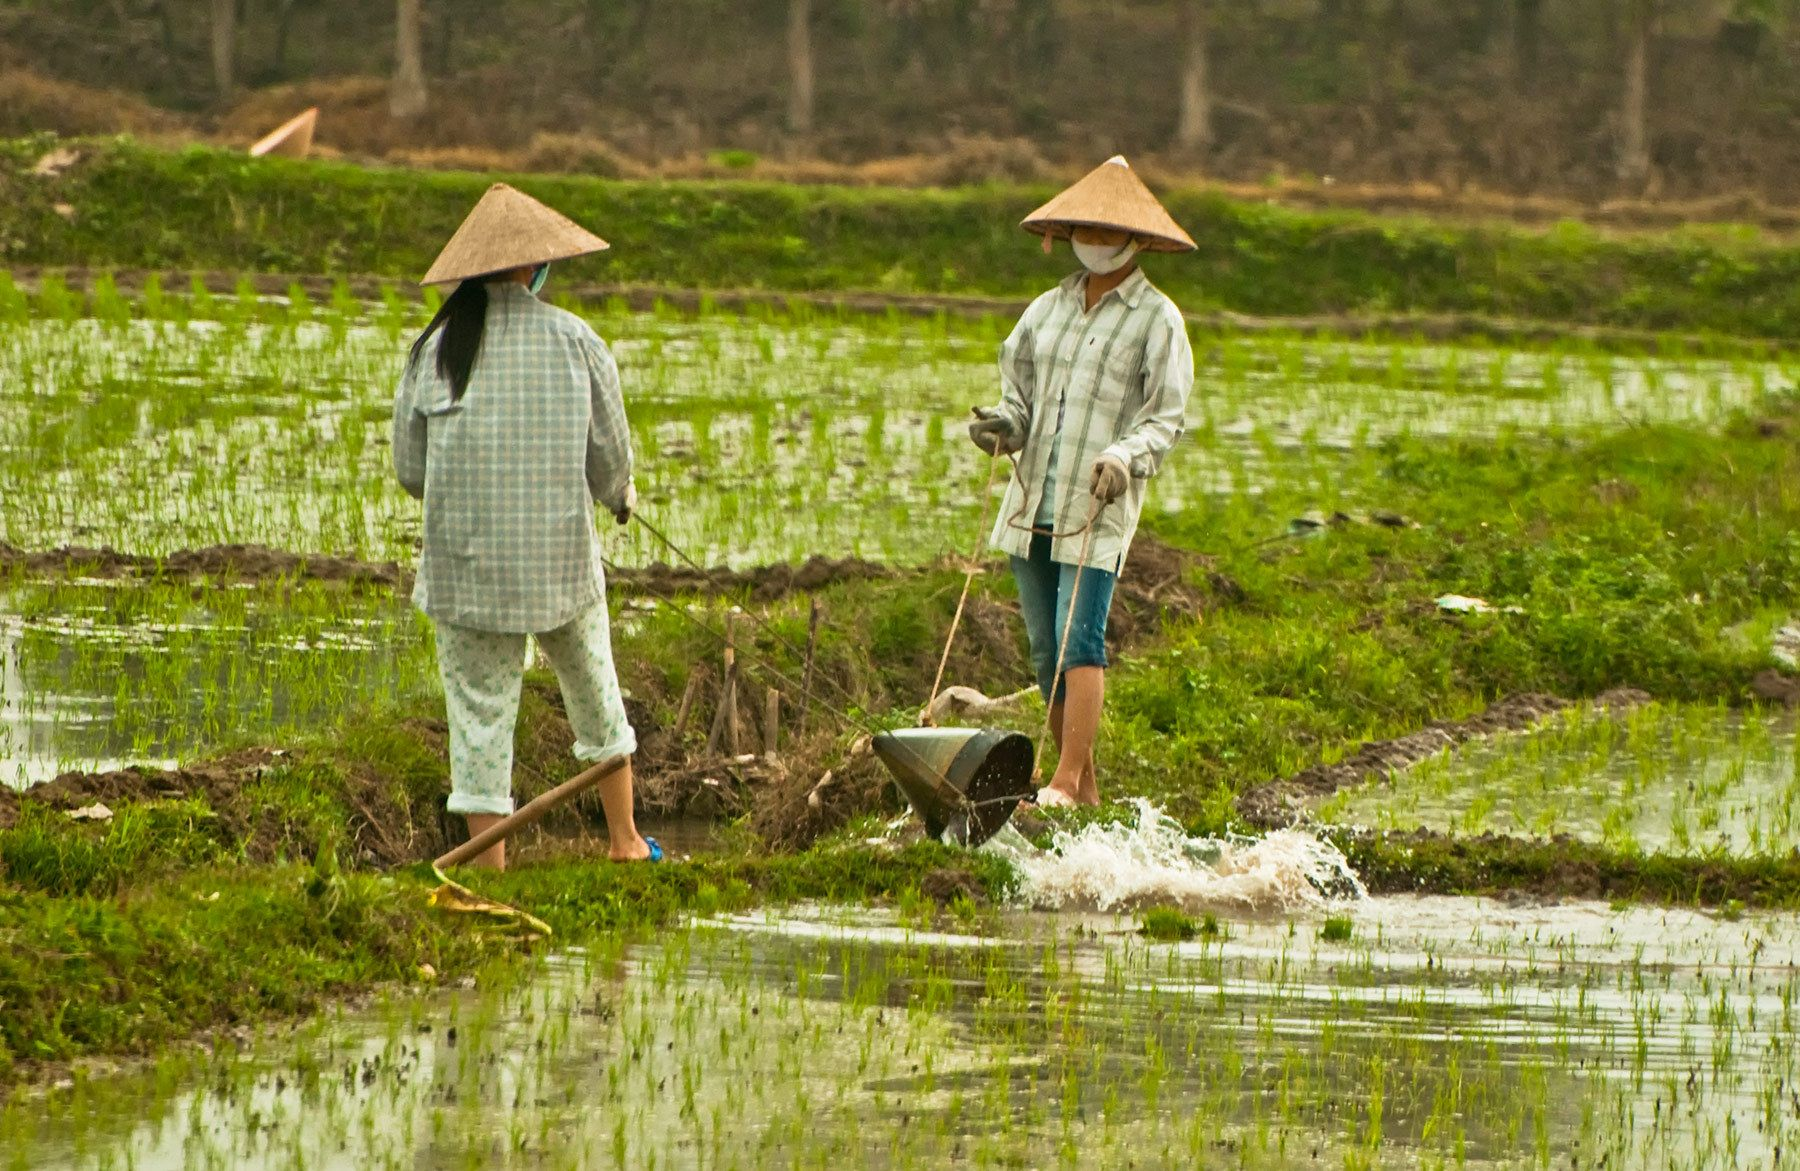 Workers irrigating rice fields, Northern Vietnam